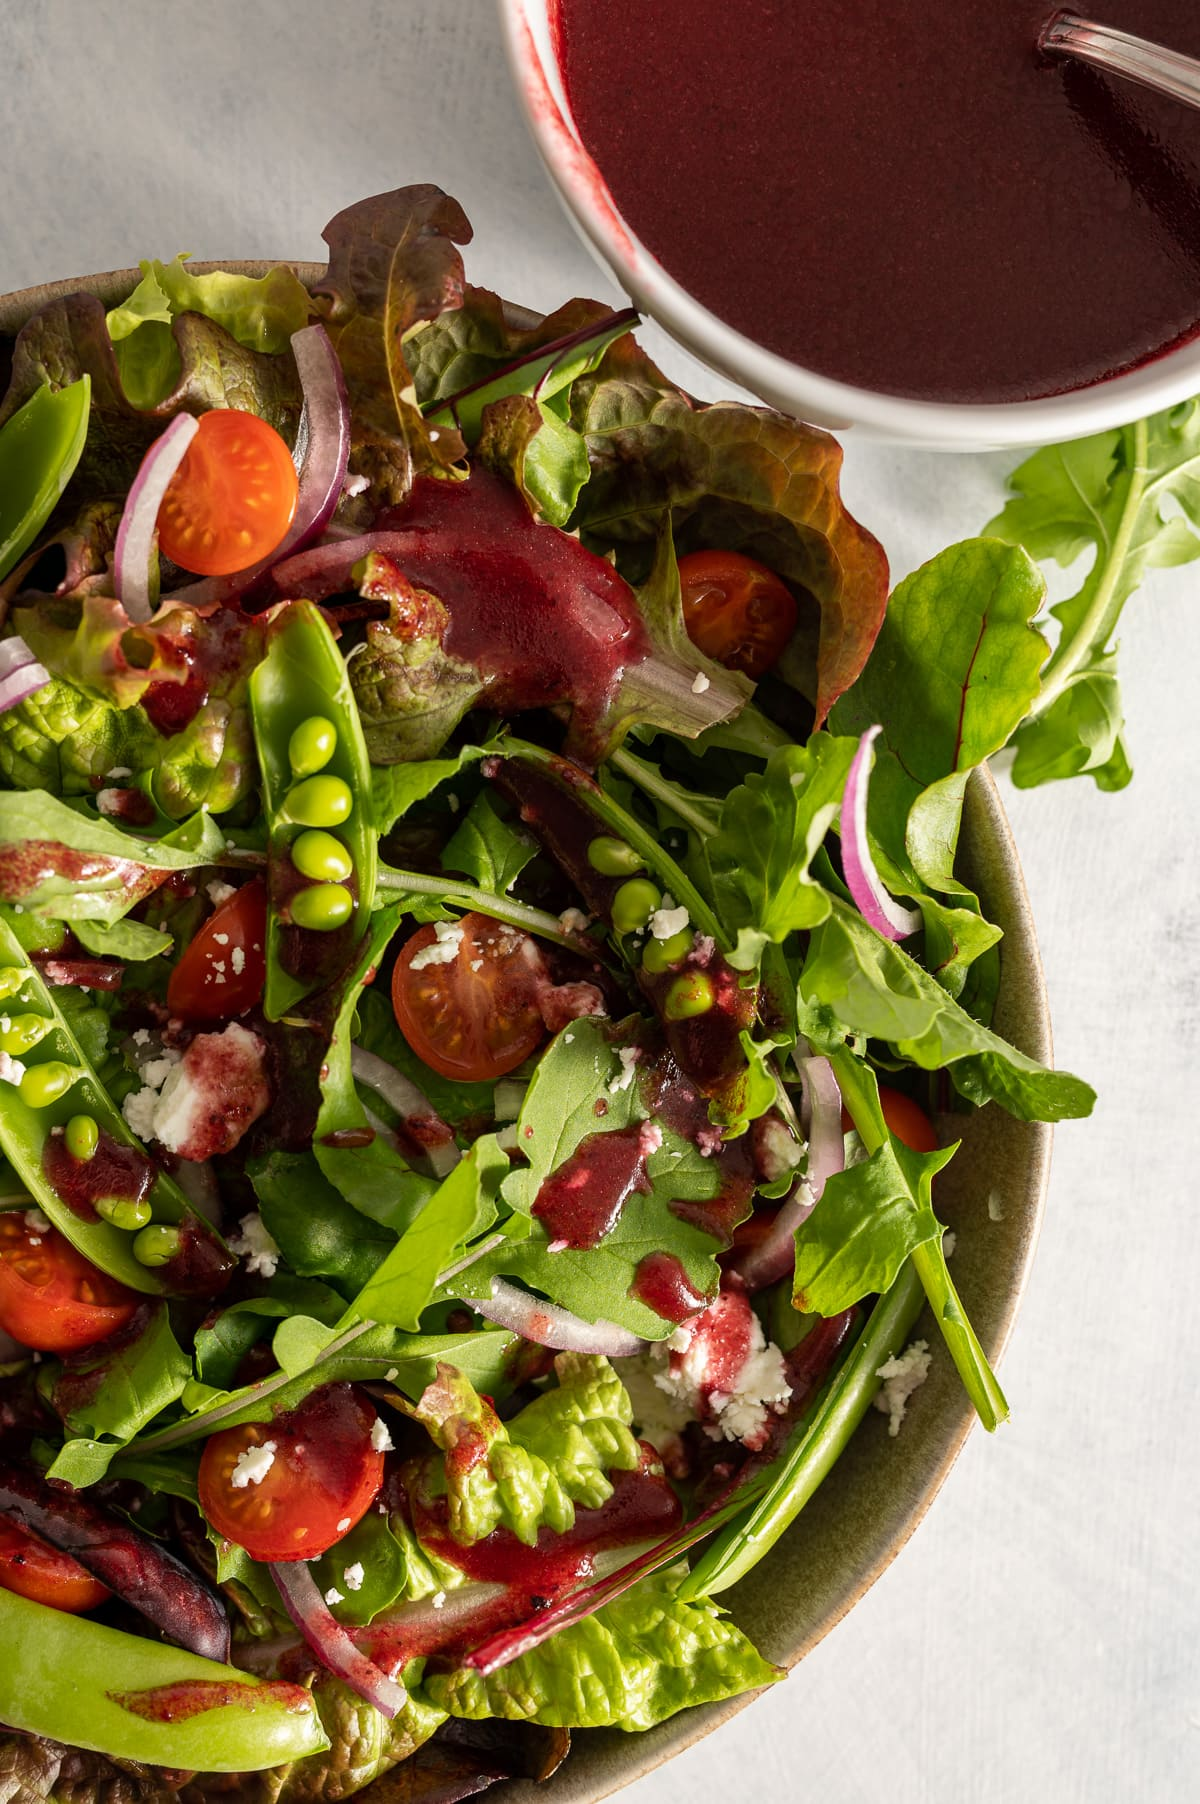 close up of a bowl of salad greens with dark red hibiscus vinaigrette dressing